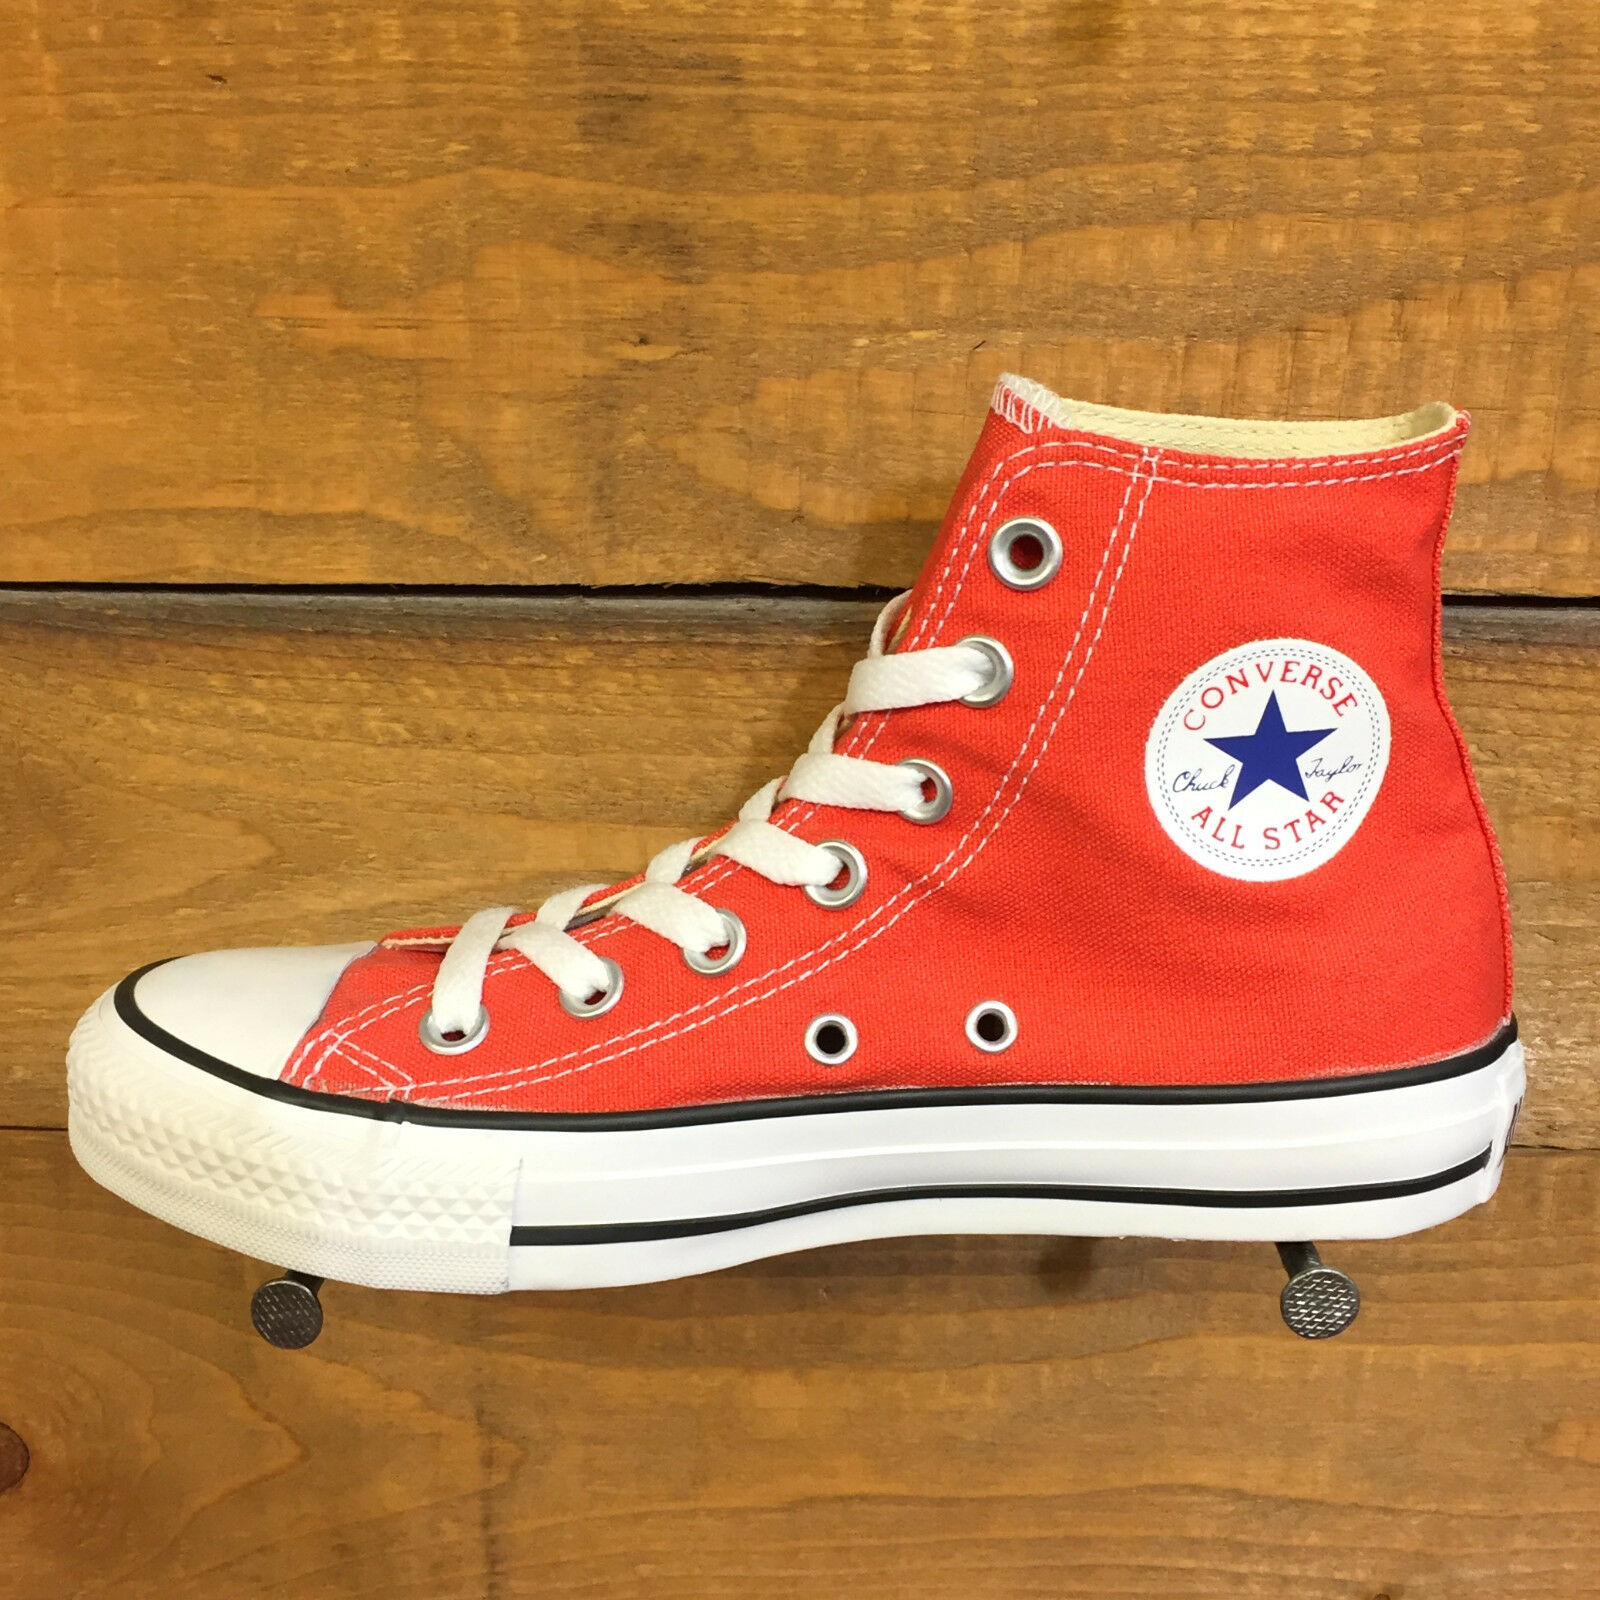 CONVERSE All Star Chucks Season Hi Schuhe Sneakers red clay 136815C